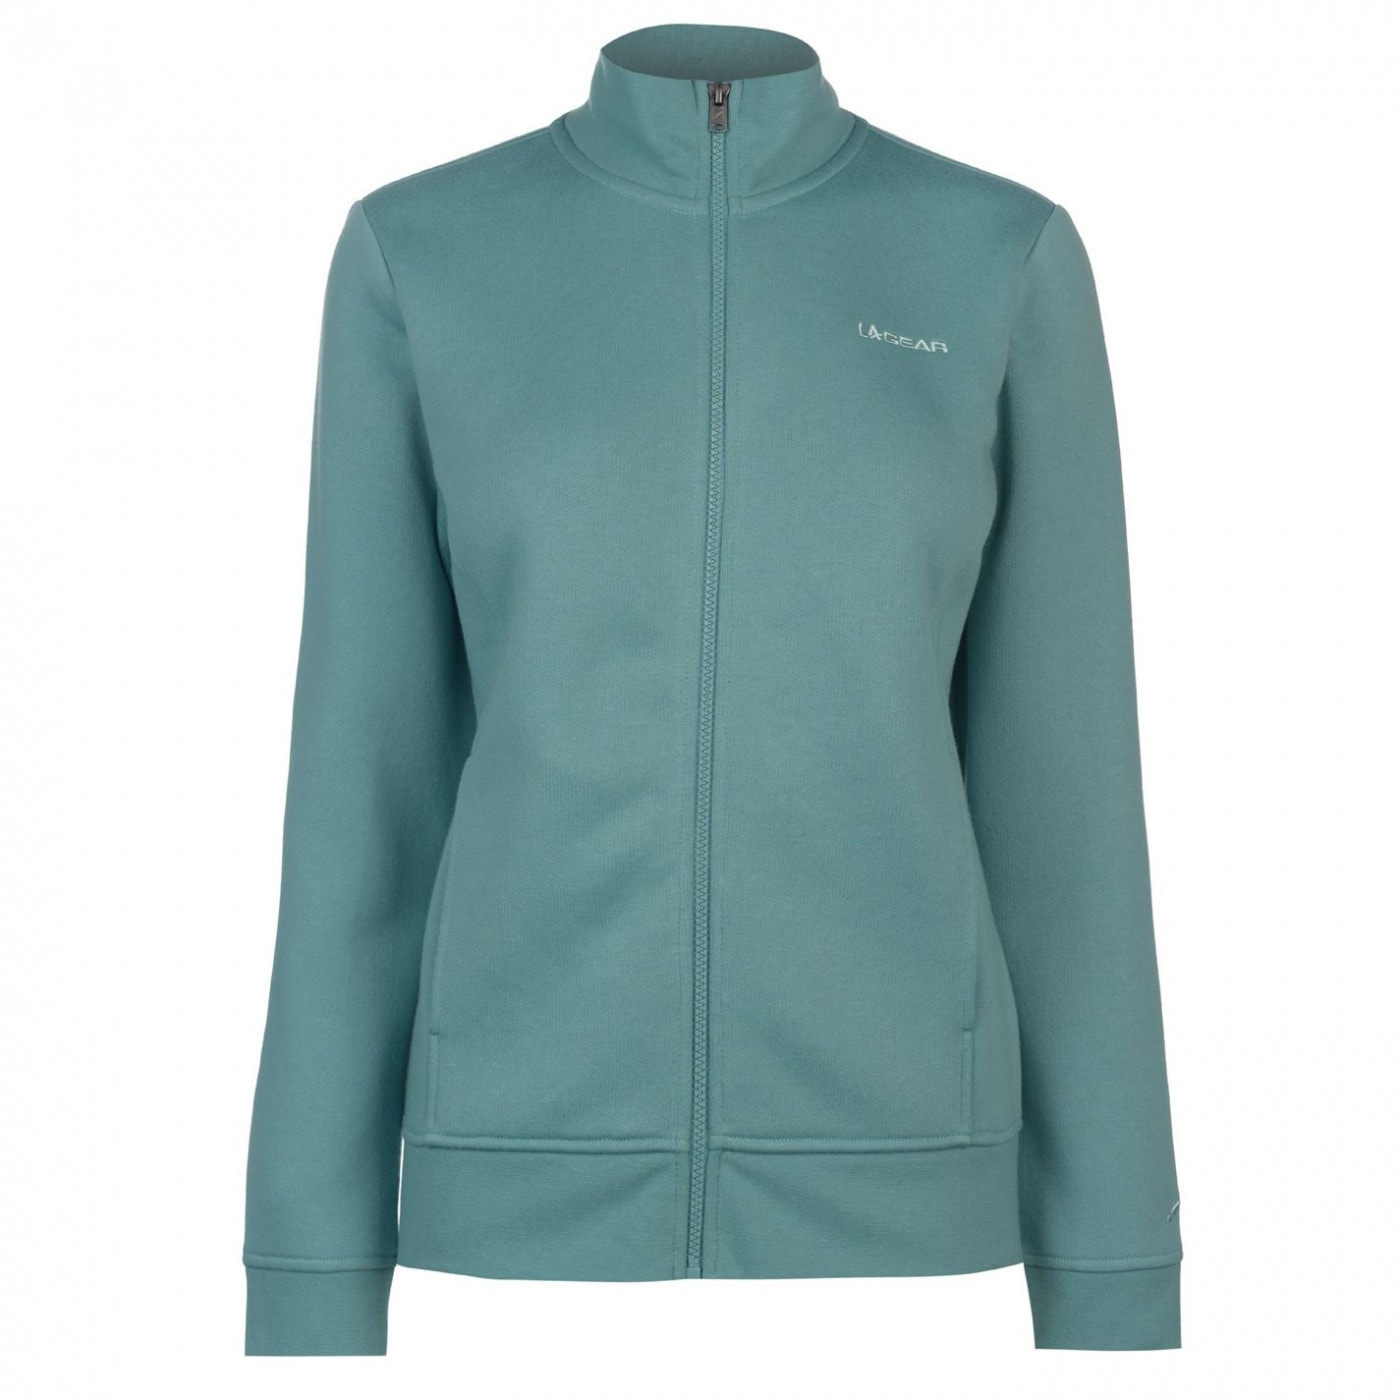 LA Gear Full Zip Fleece Ladies